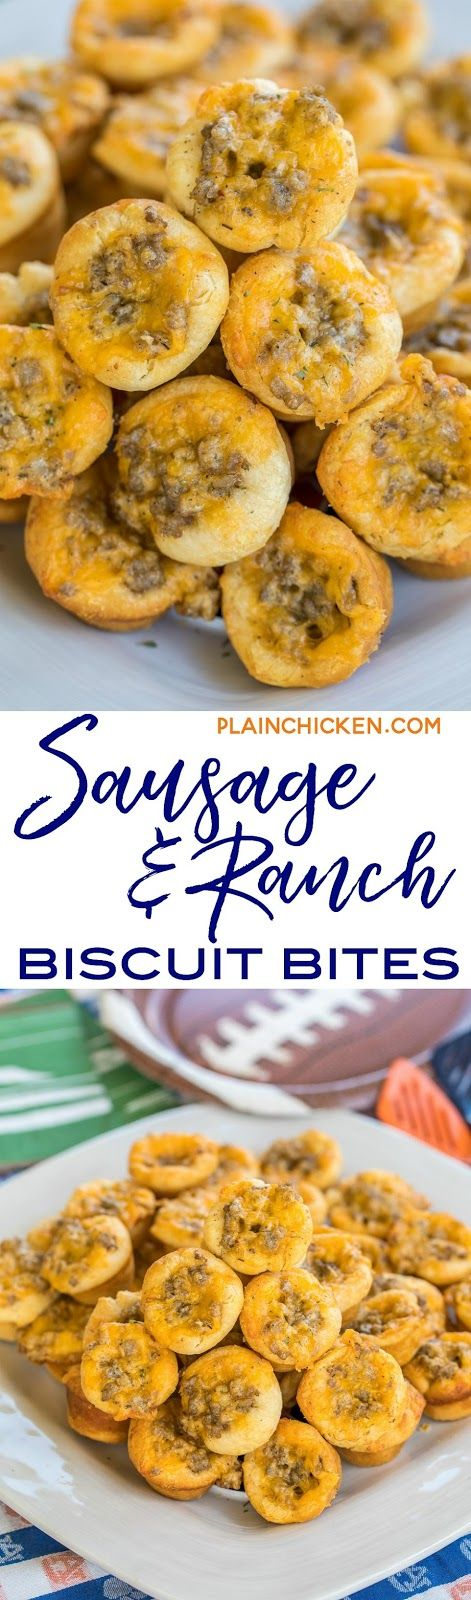 Sausage and Ranch Biscuit Bites - FOOTBALL FRIDAY - Plain Chicken